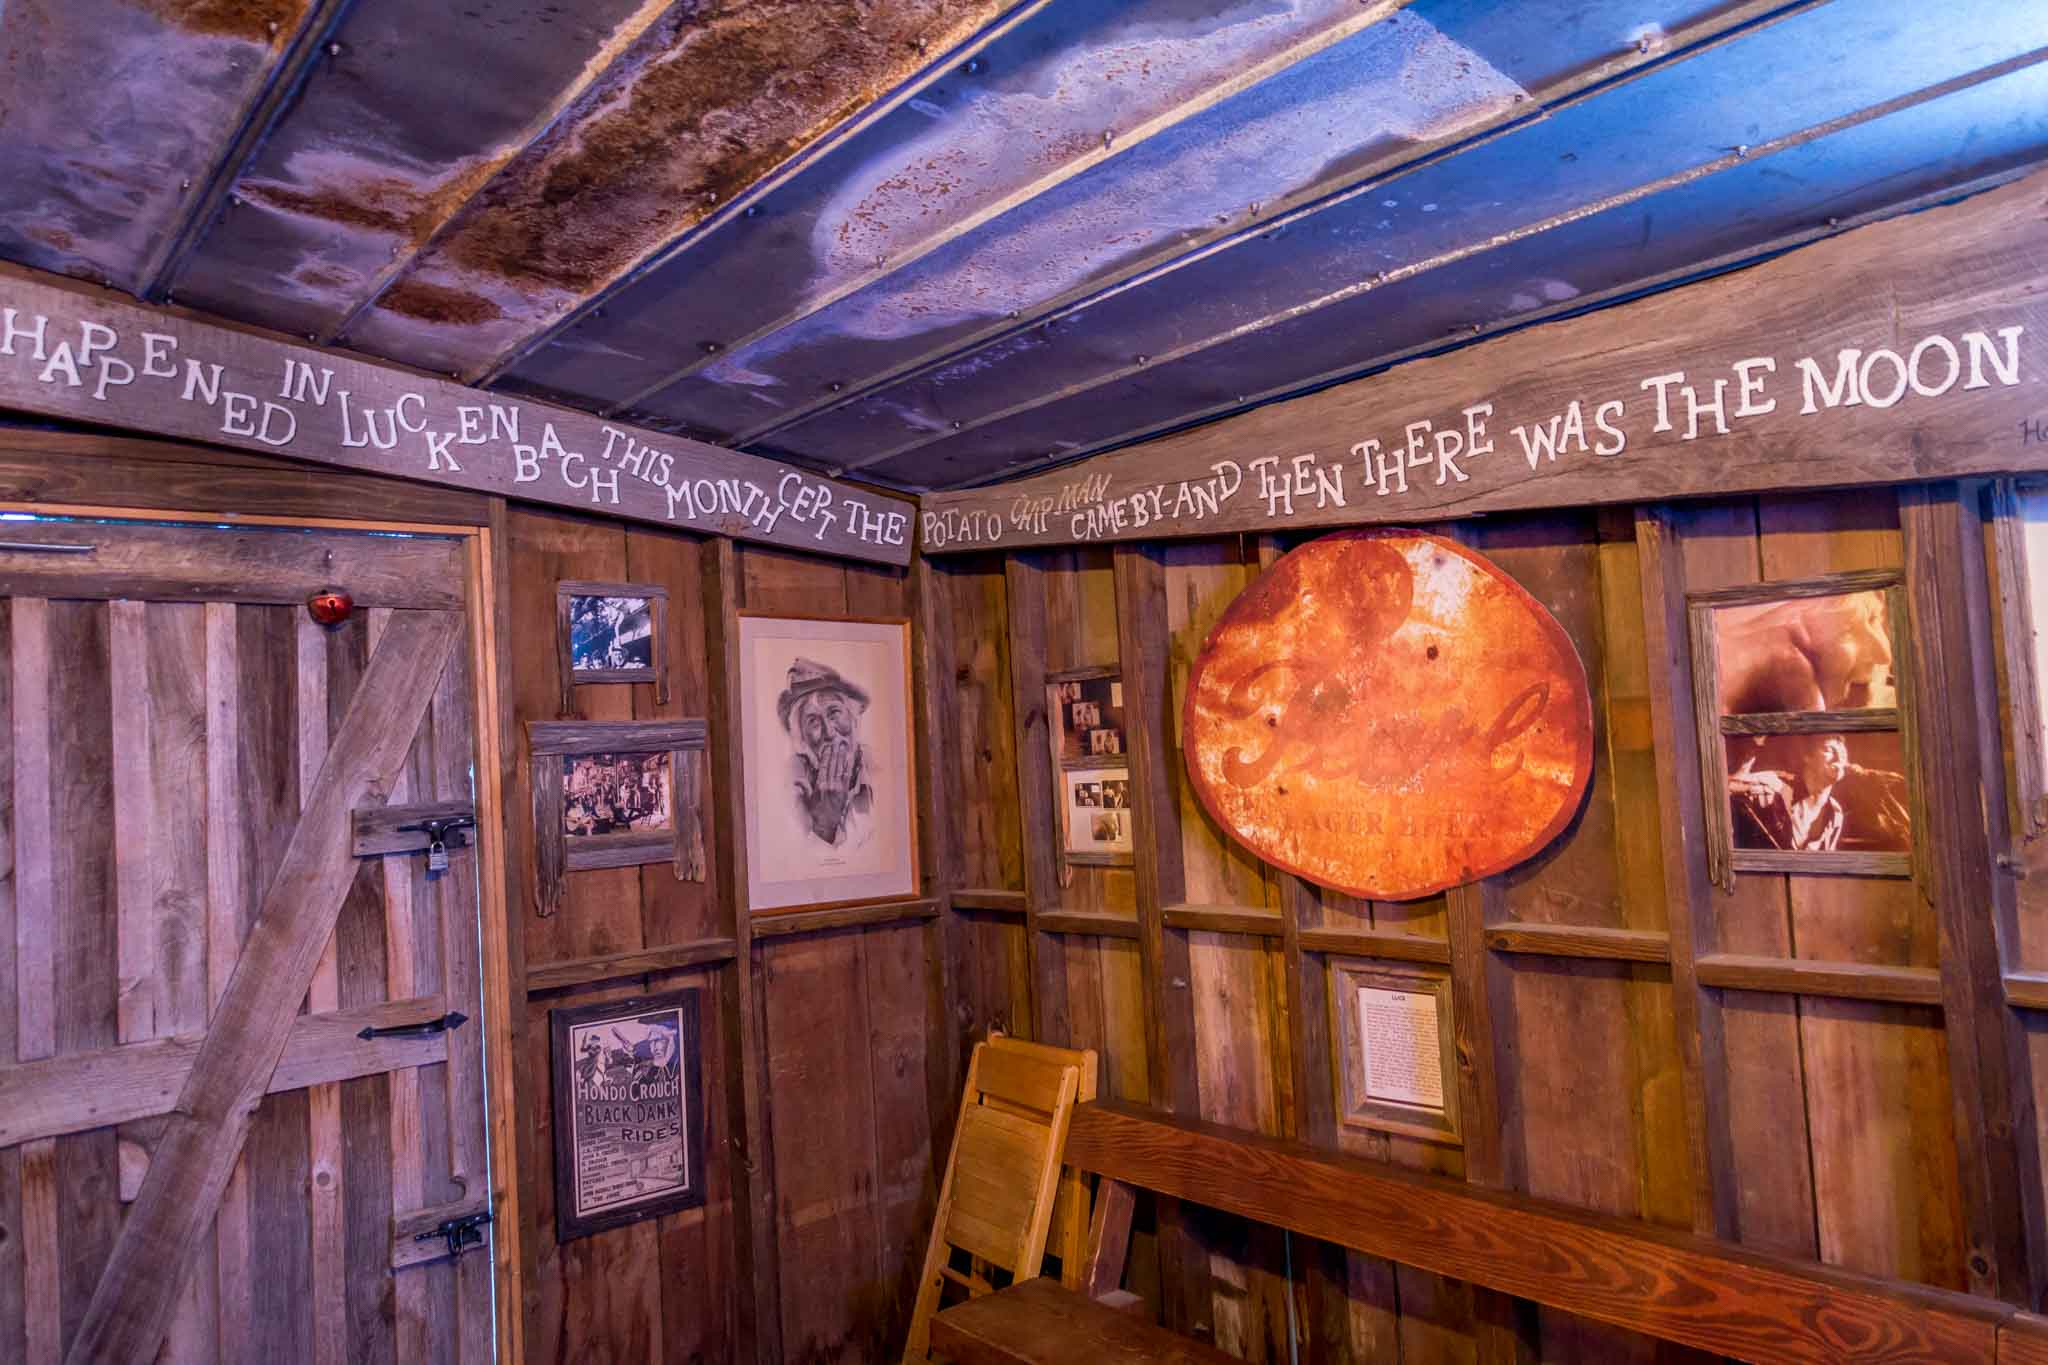 Happened in Luckenbach this month cept the potato chip man came by and then there was the moon